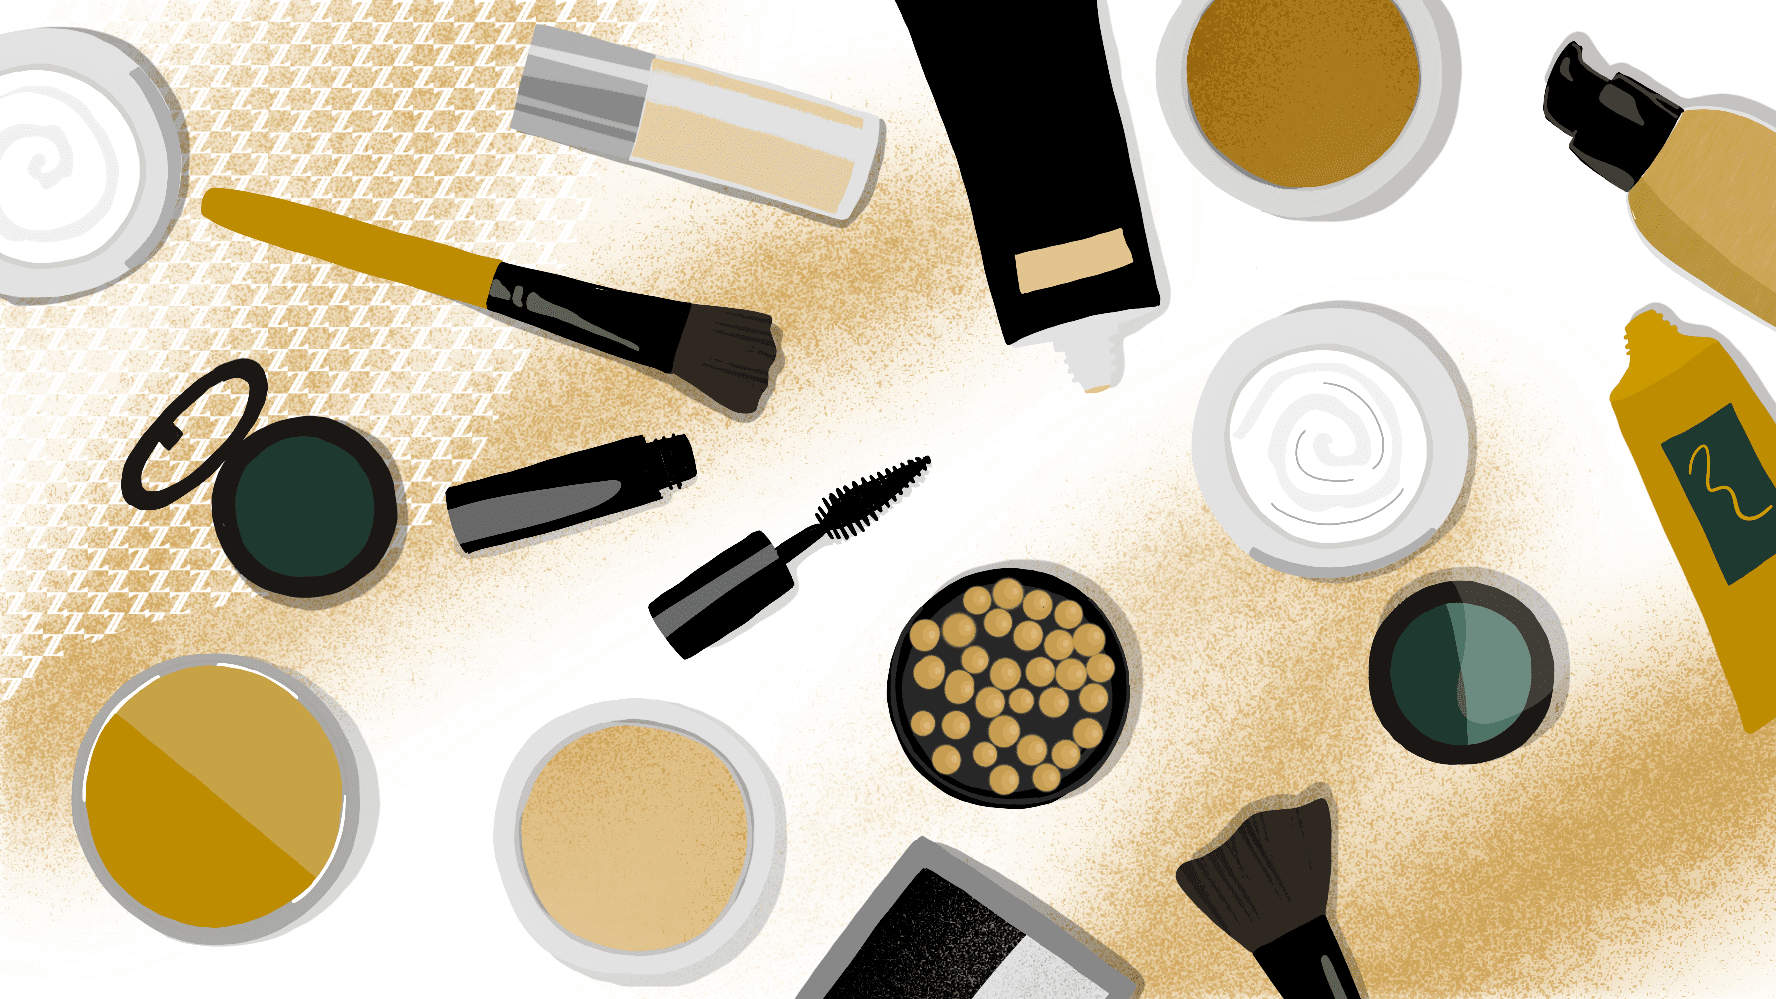 Makeup is just a dessert to the sunscreen's main course